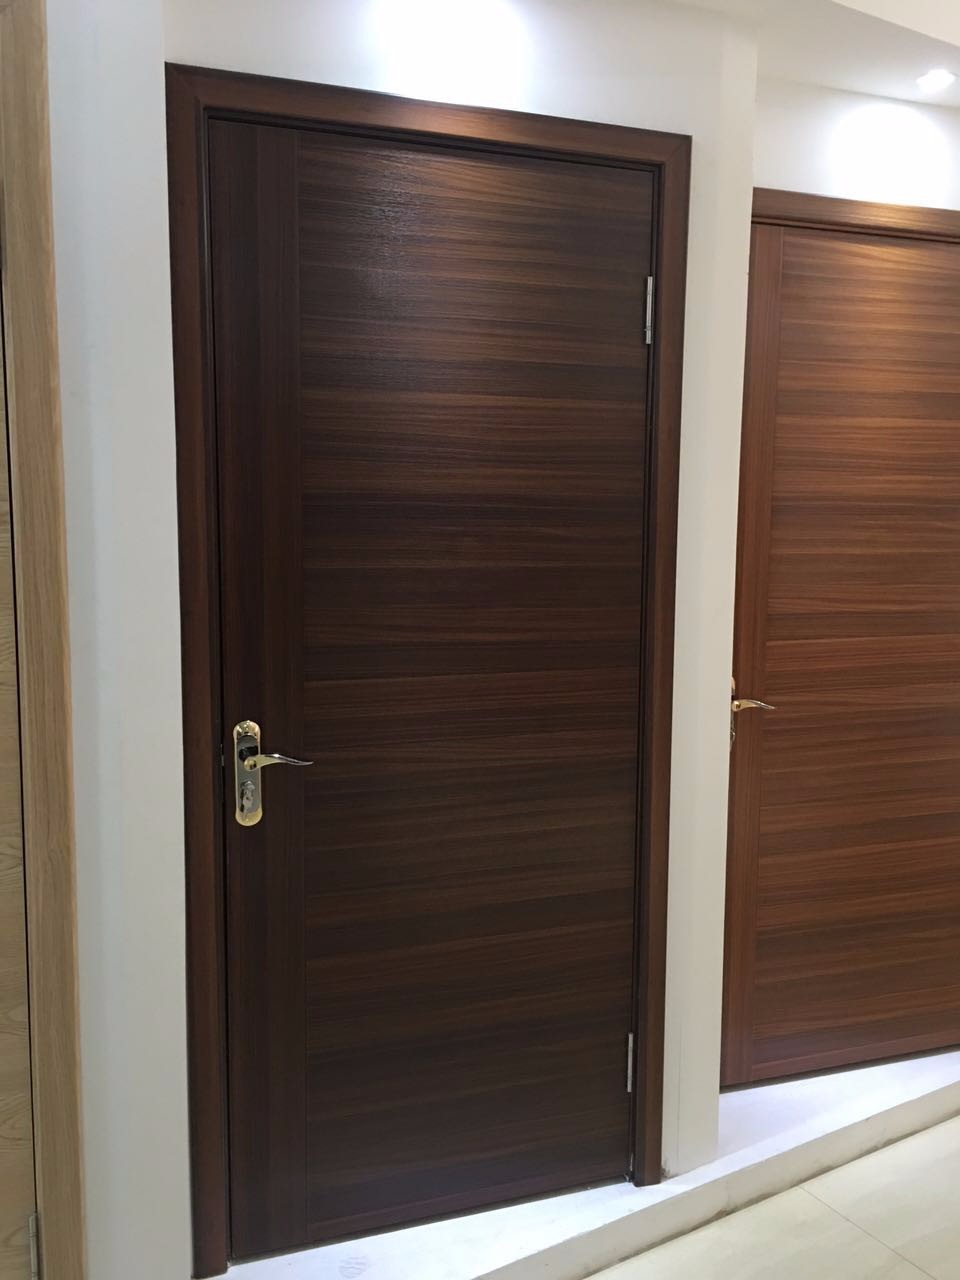 Inside Hotel Room Door: Modern House Design Wood Veneer Door Skin / Melamine